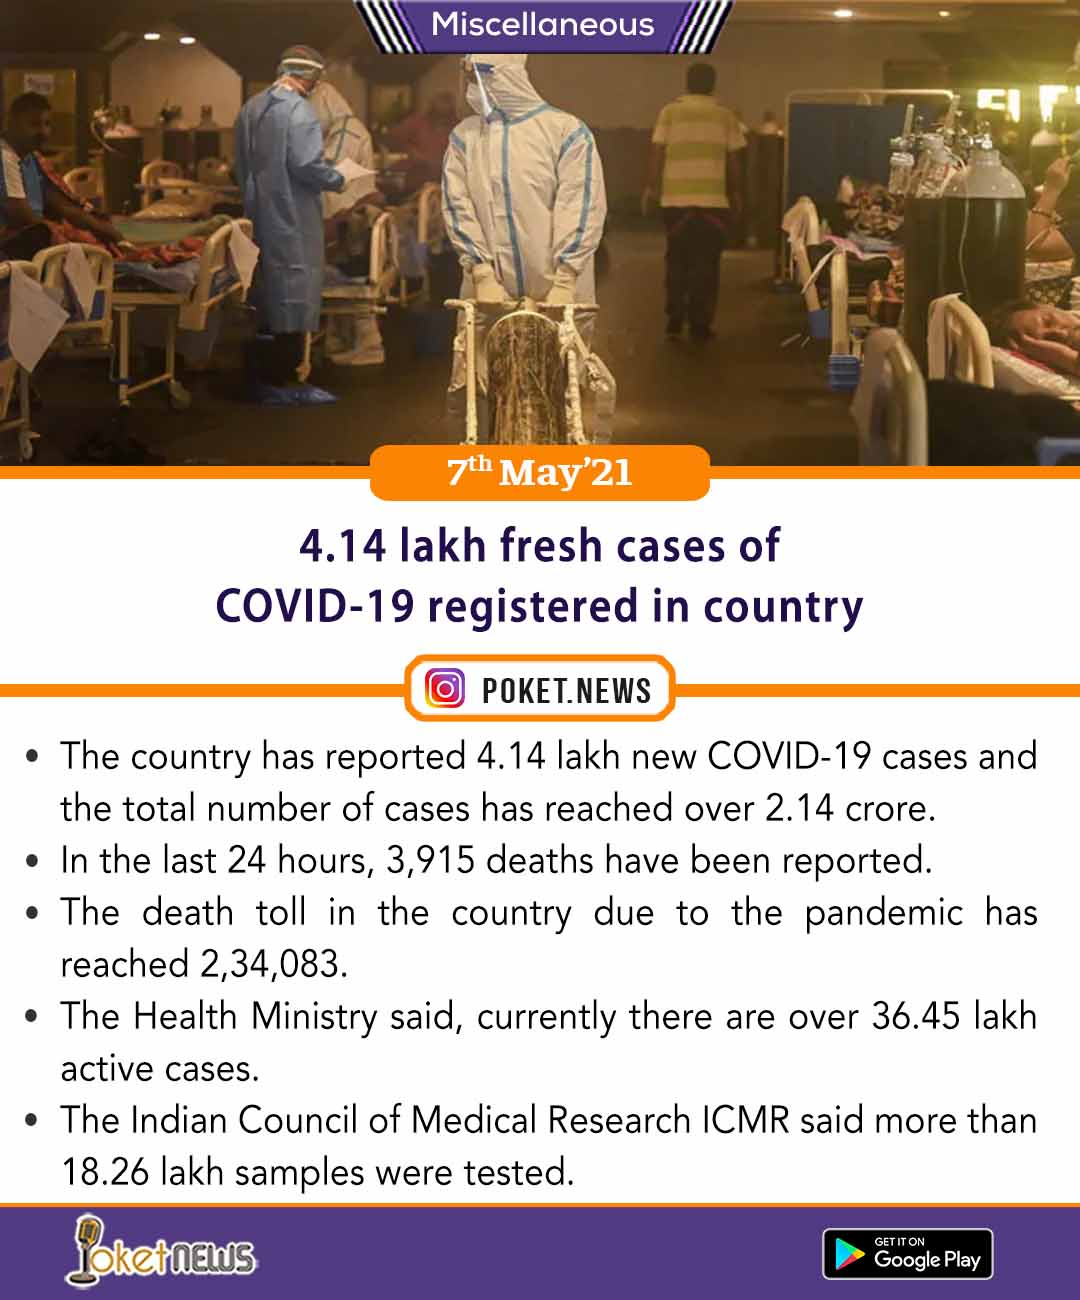 4.14 lakh fresh cases of COVID-19 registered in country